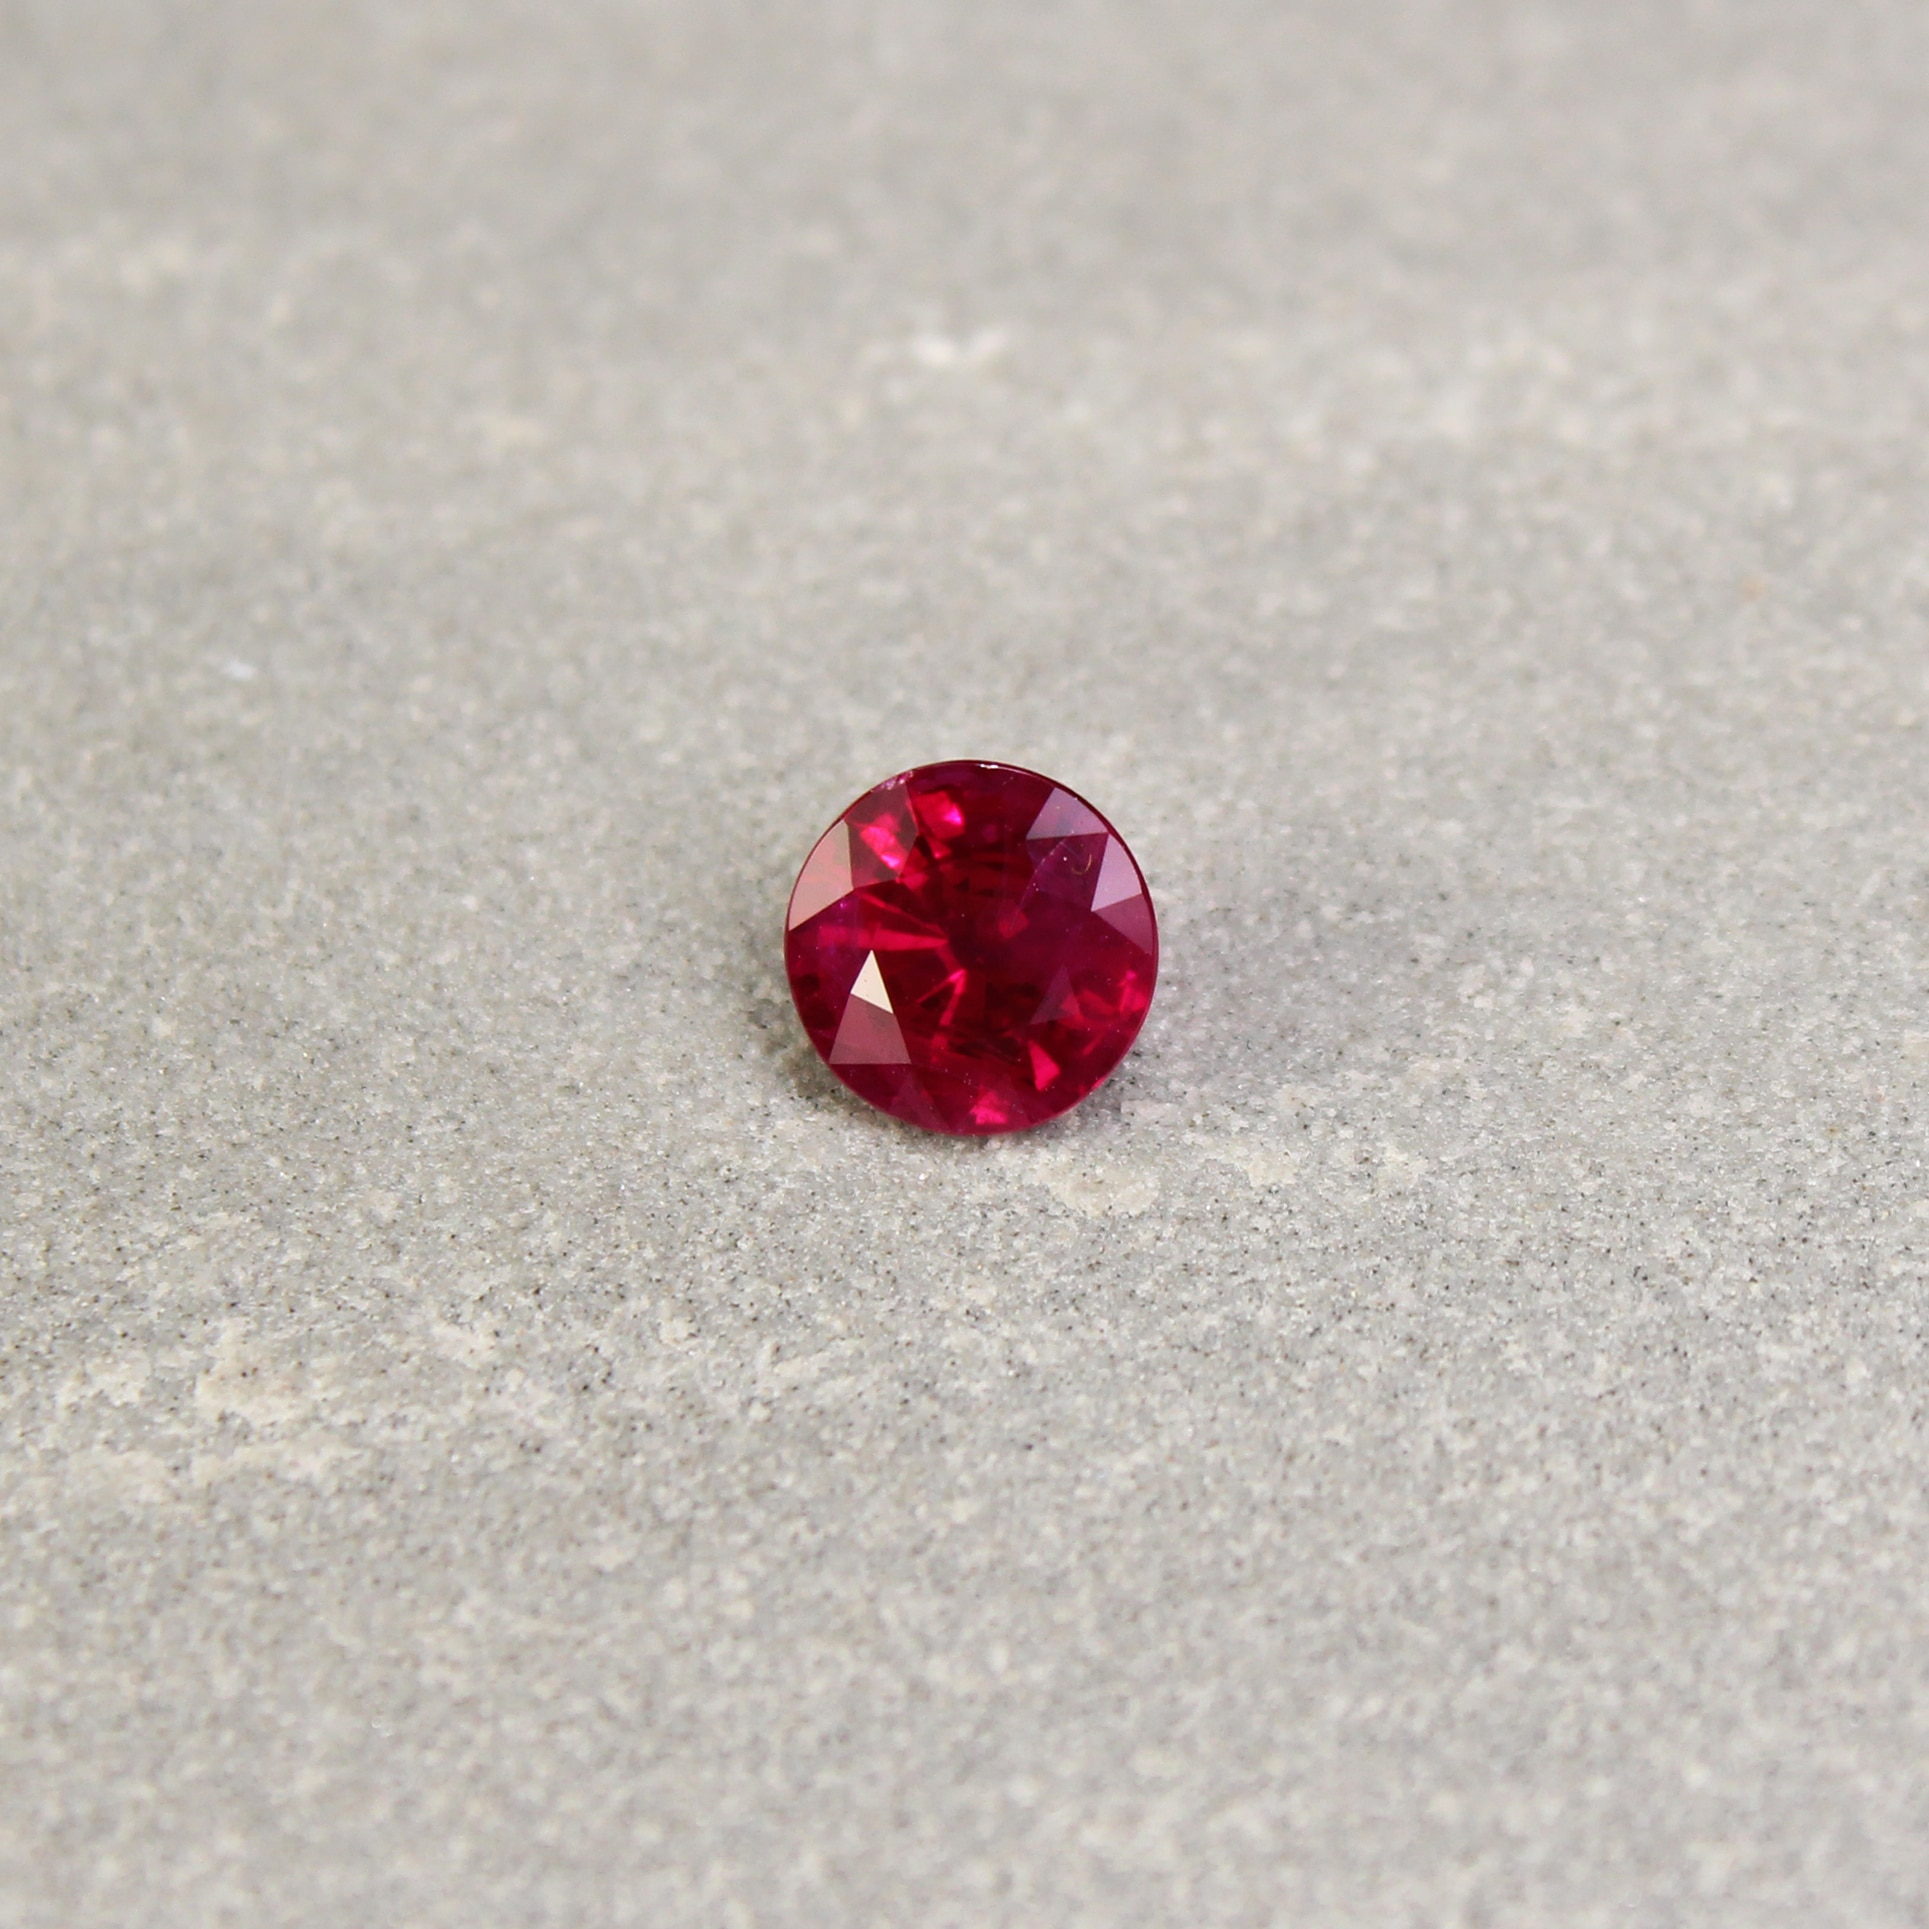 1.15 ct round red ruby